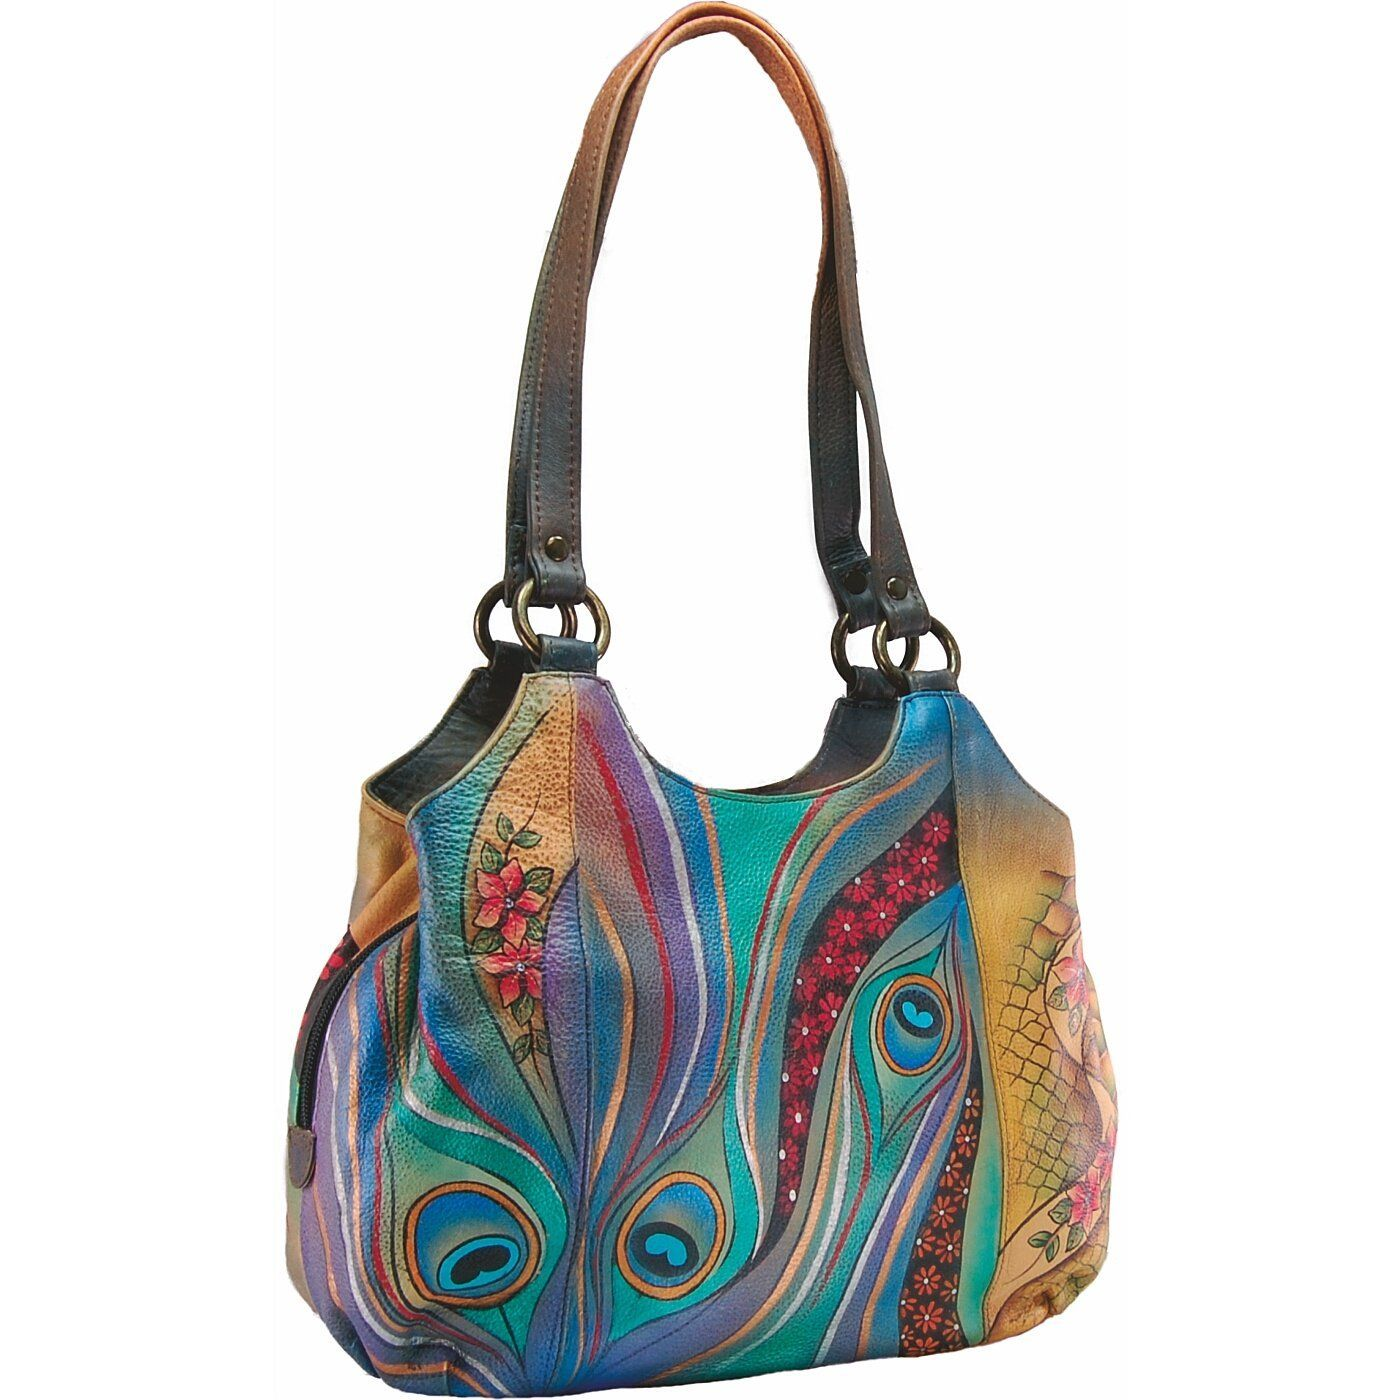 ANUSCHKA hand painted leather shoulder bag Amazon.co.uk